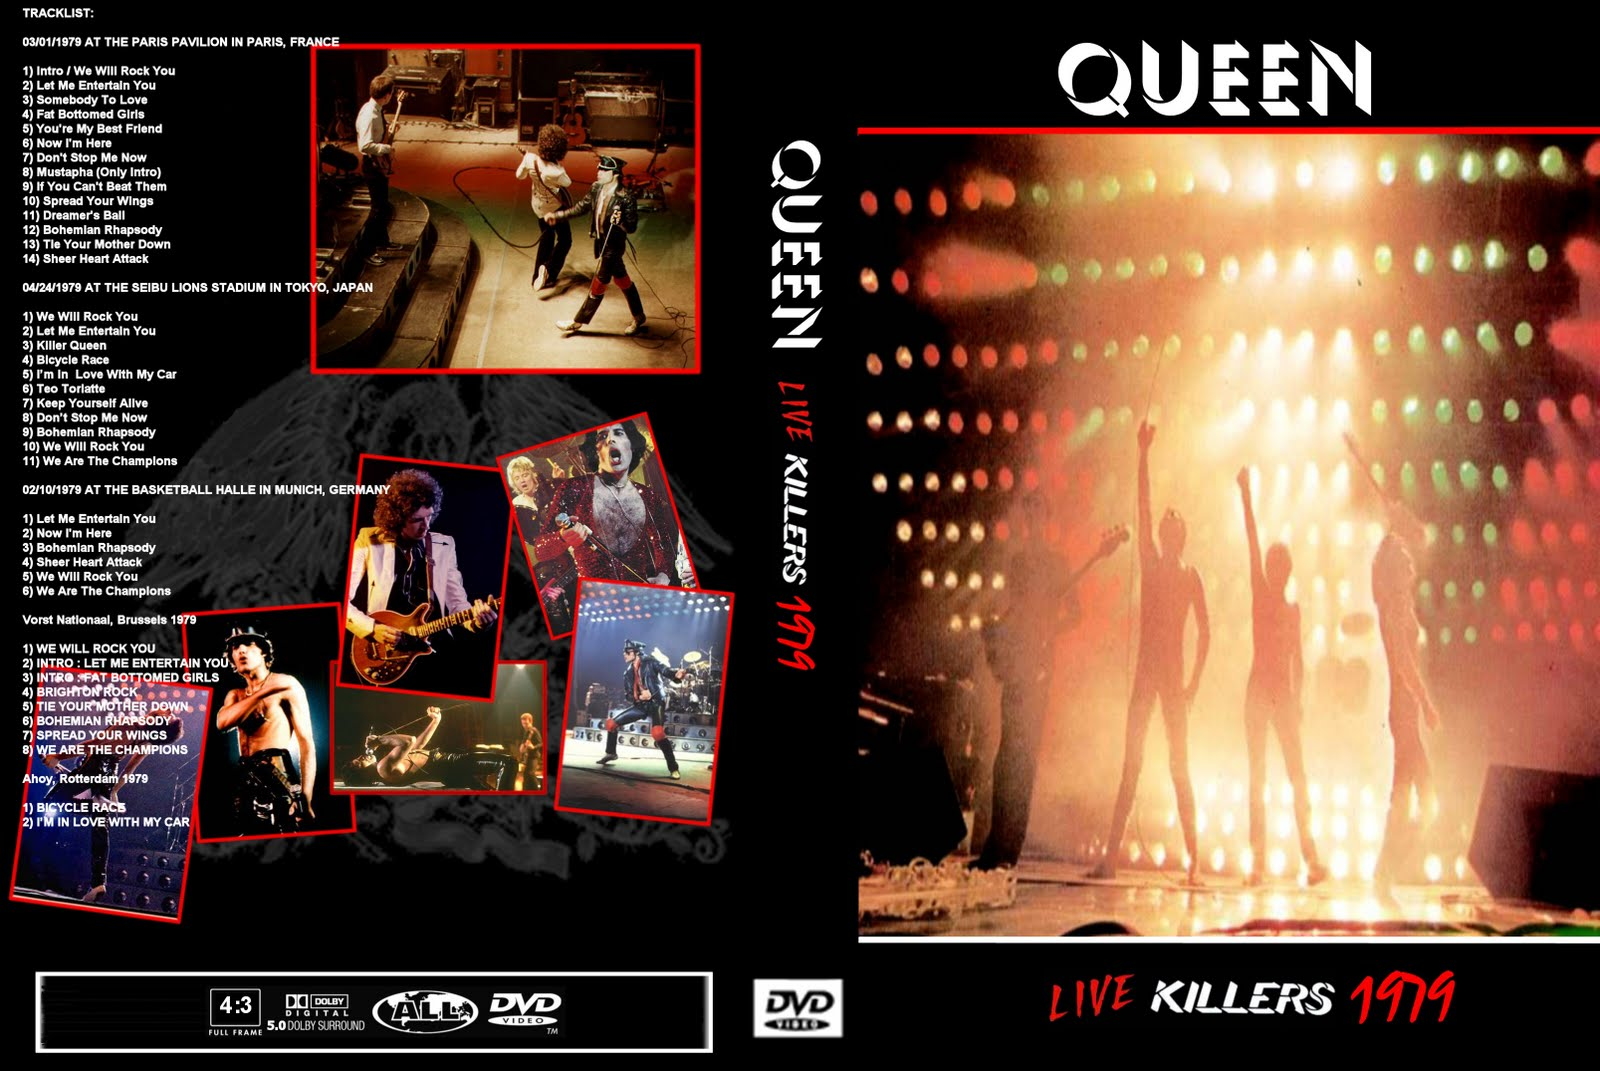 Queen Live Killers 1979 DVD-R Queen 2BLive 2BKillers 2BTour 2B1979 2BXANDAO 2BDOWNLOAD